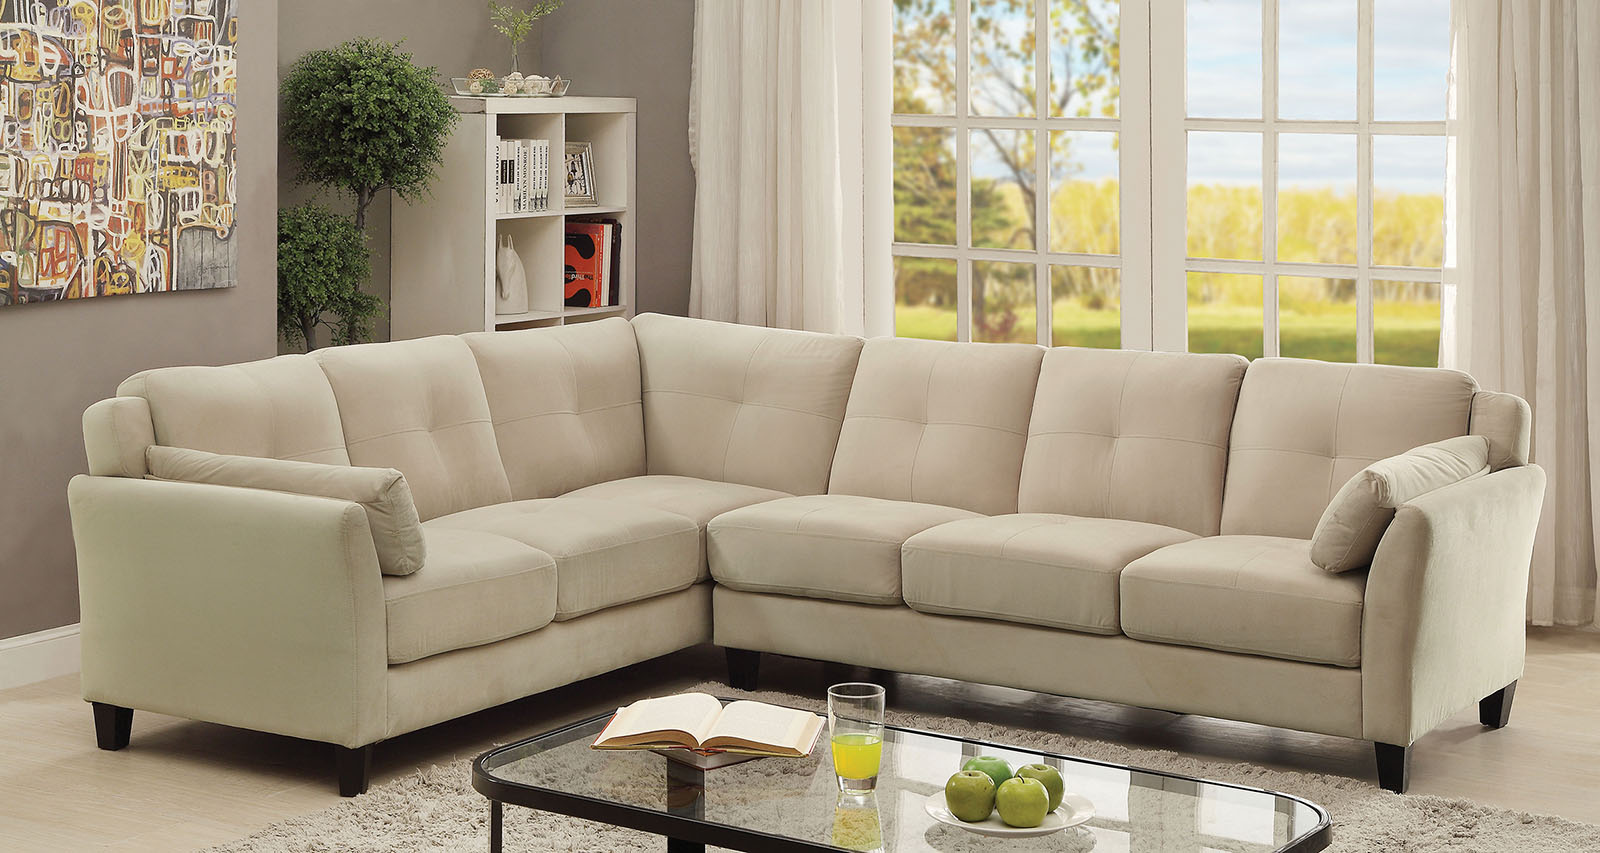 6368bg Beige Contemporary Sectional Sofa Furniture Of